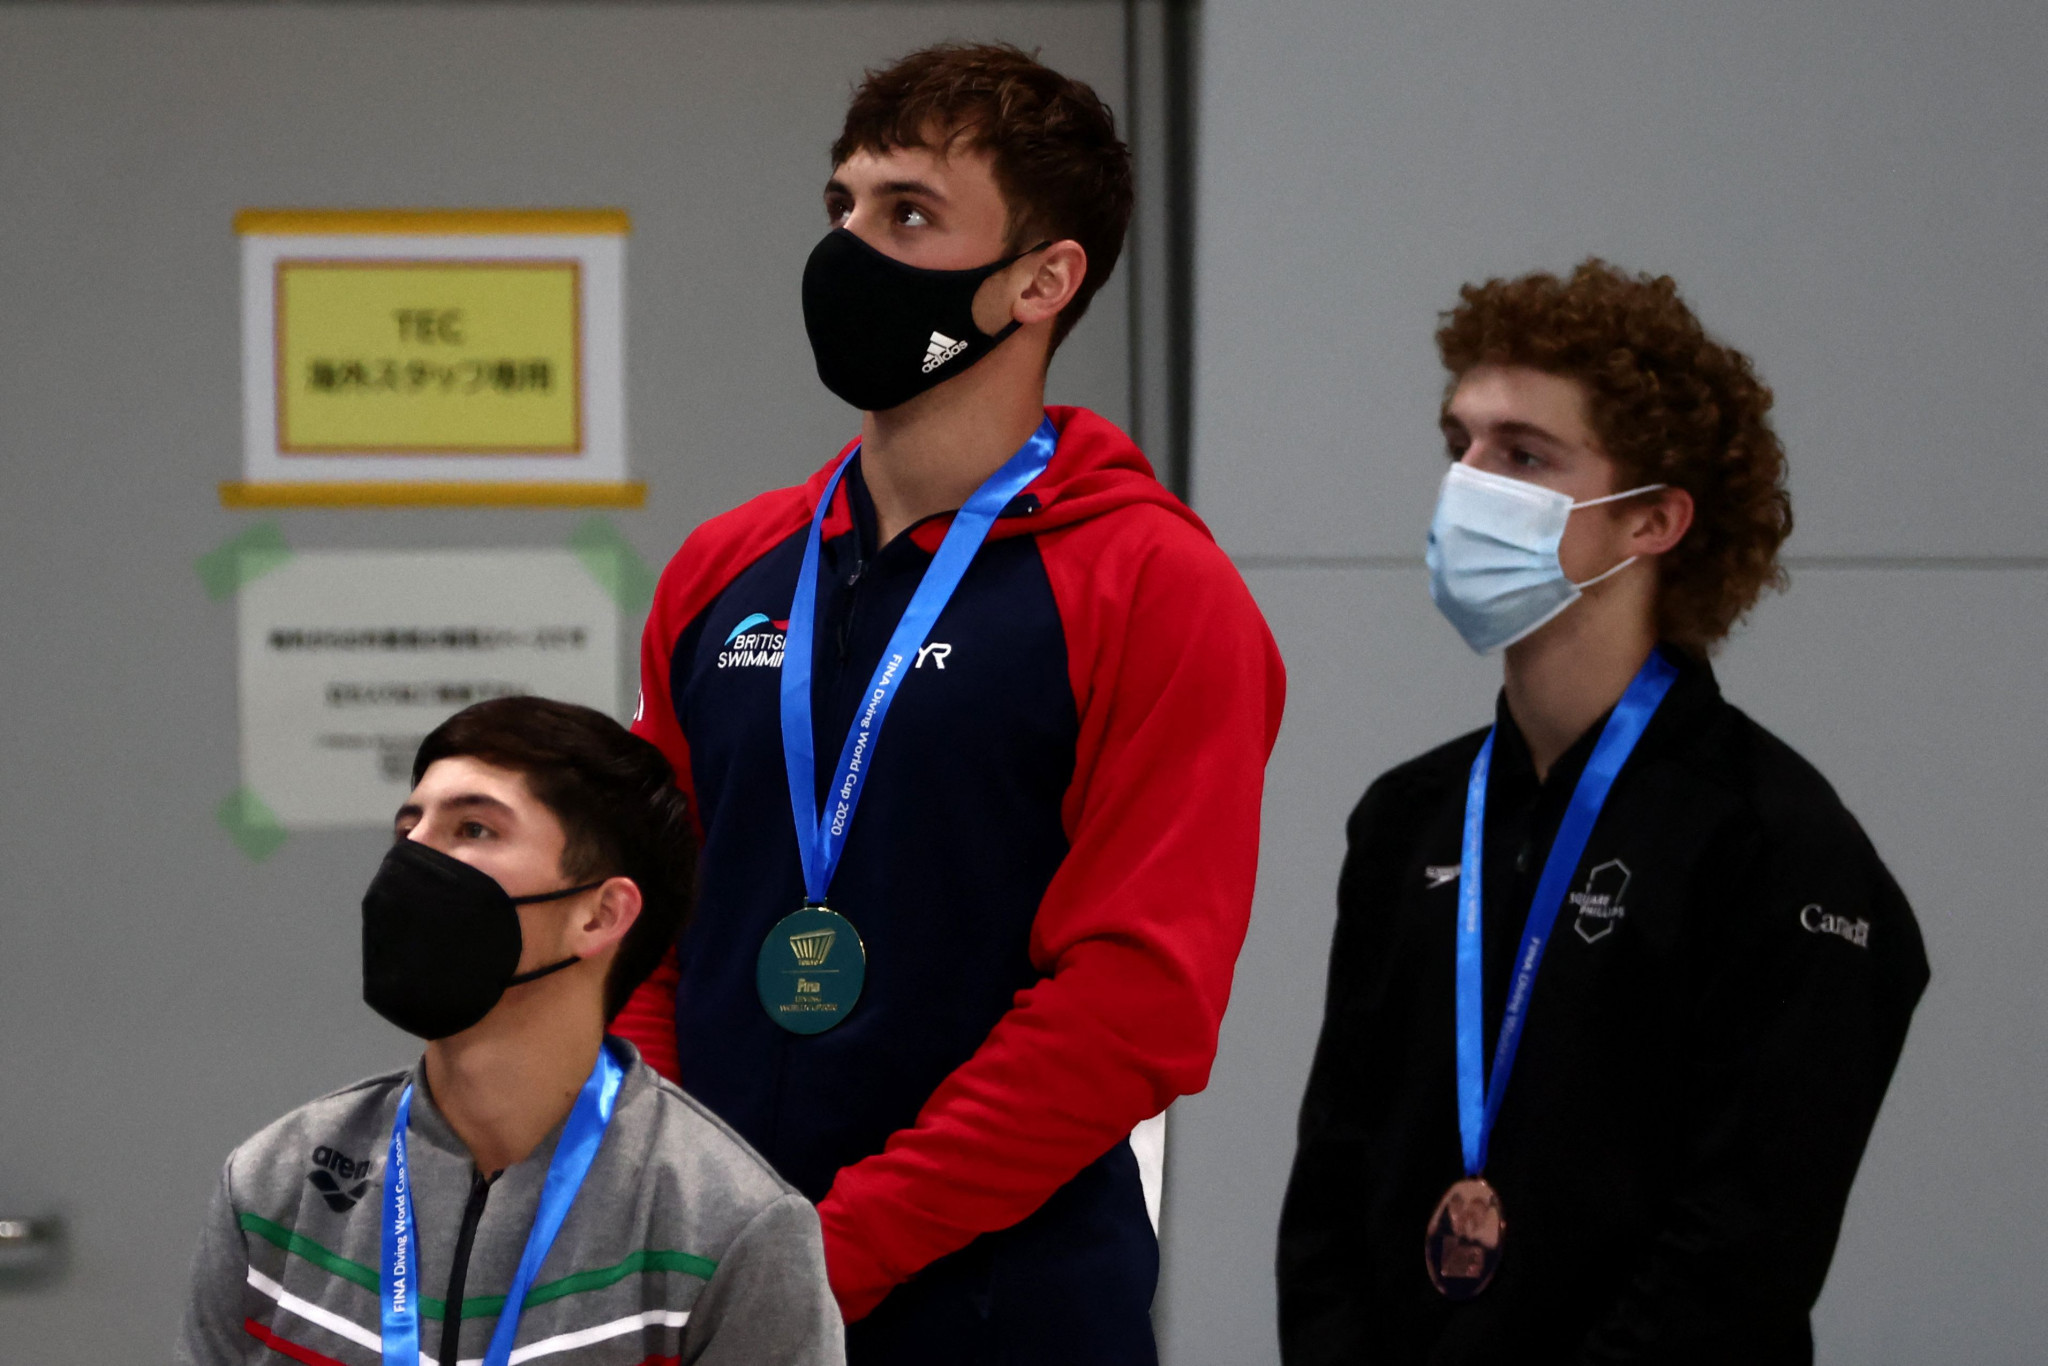 Chen and Daley triumph at FINA Diving World Cup in Tokyo